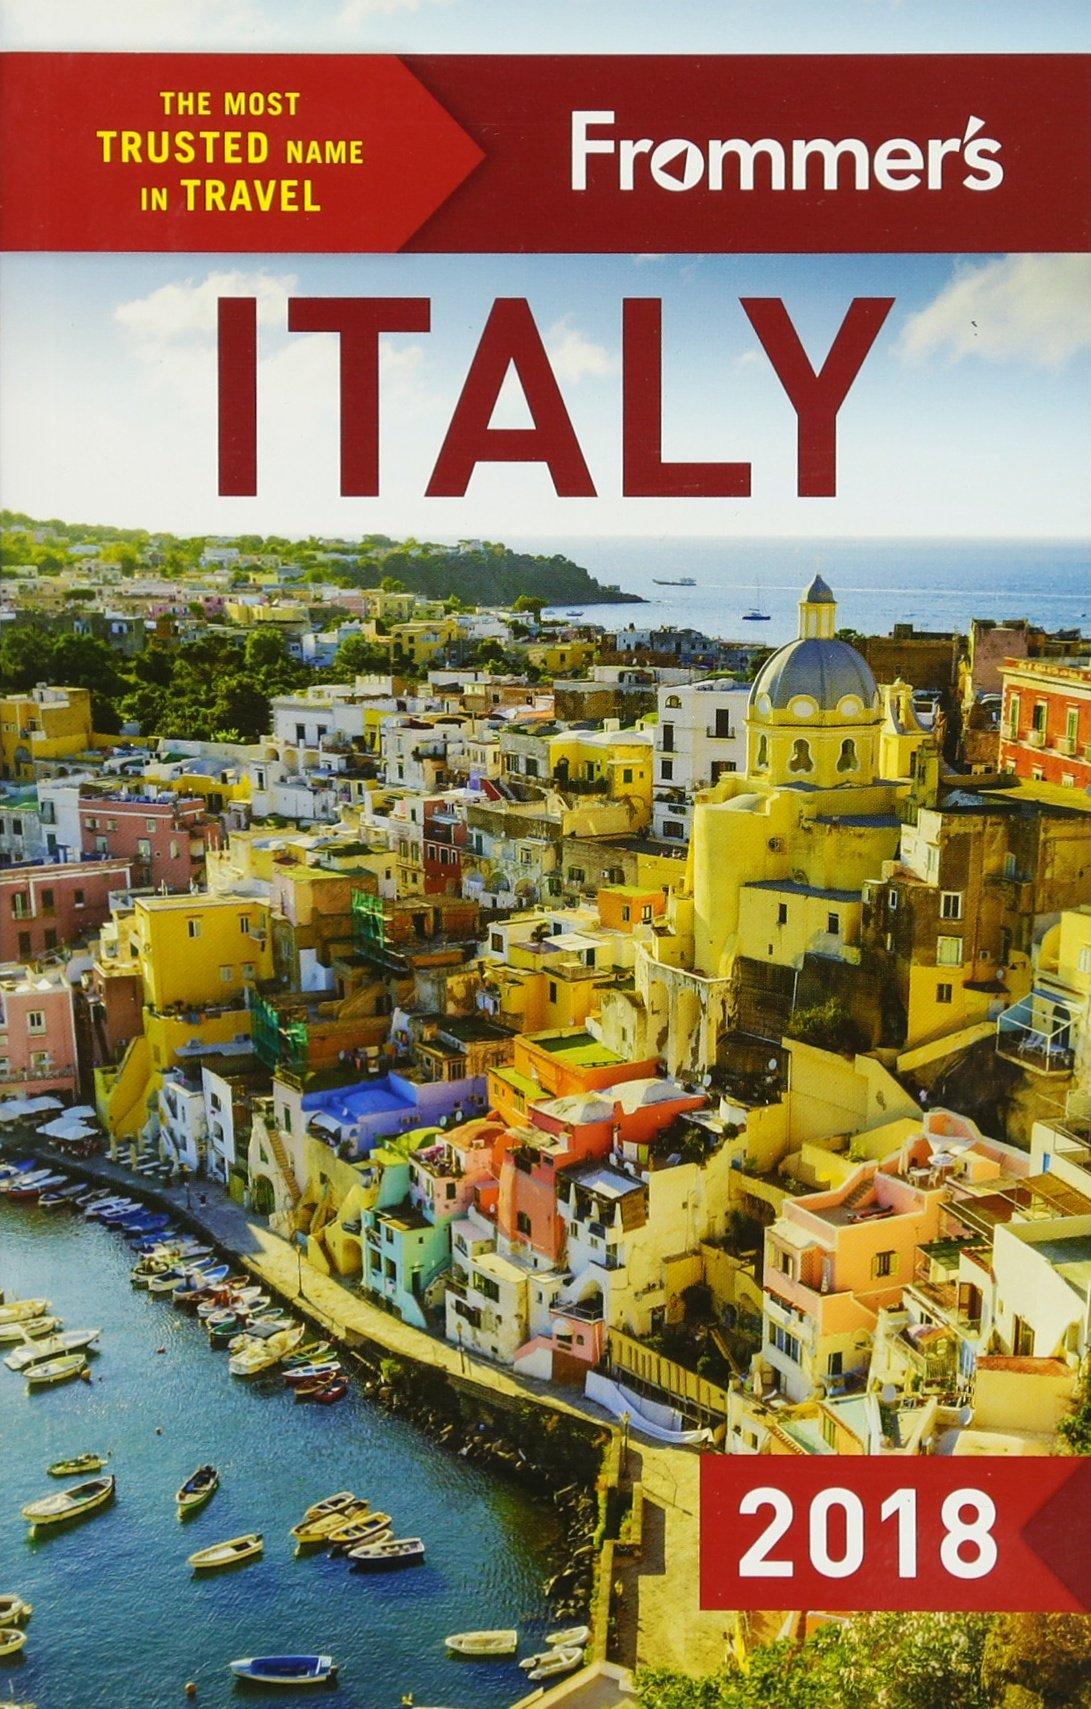 Download Frommer's Italy 2018 (Complete Guides) ePub fb2 book